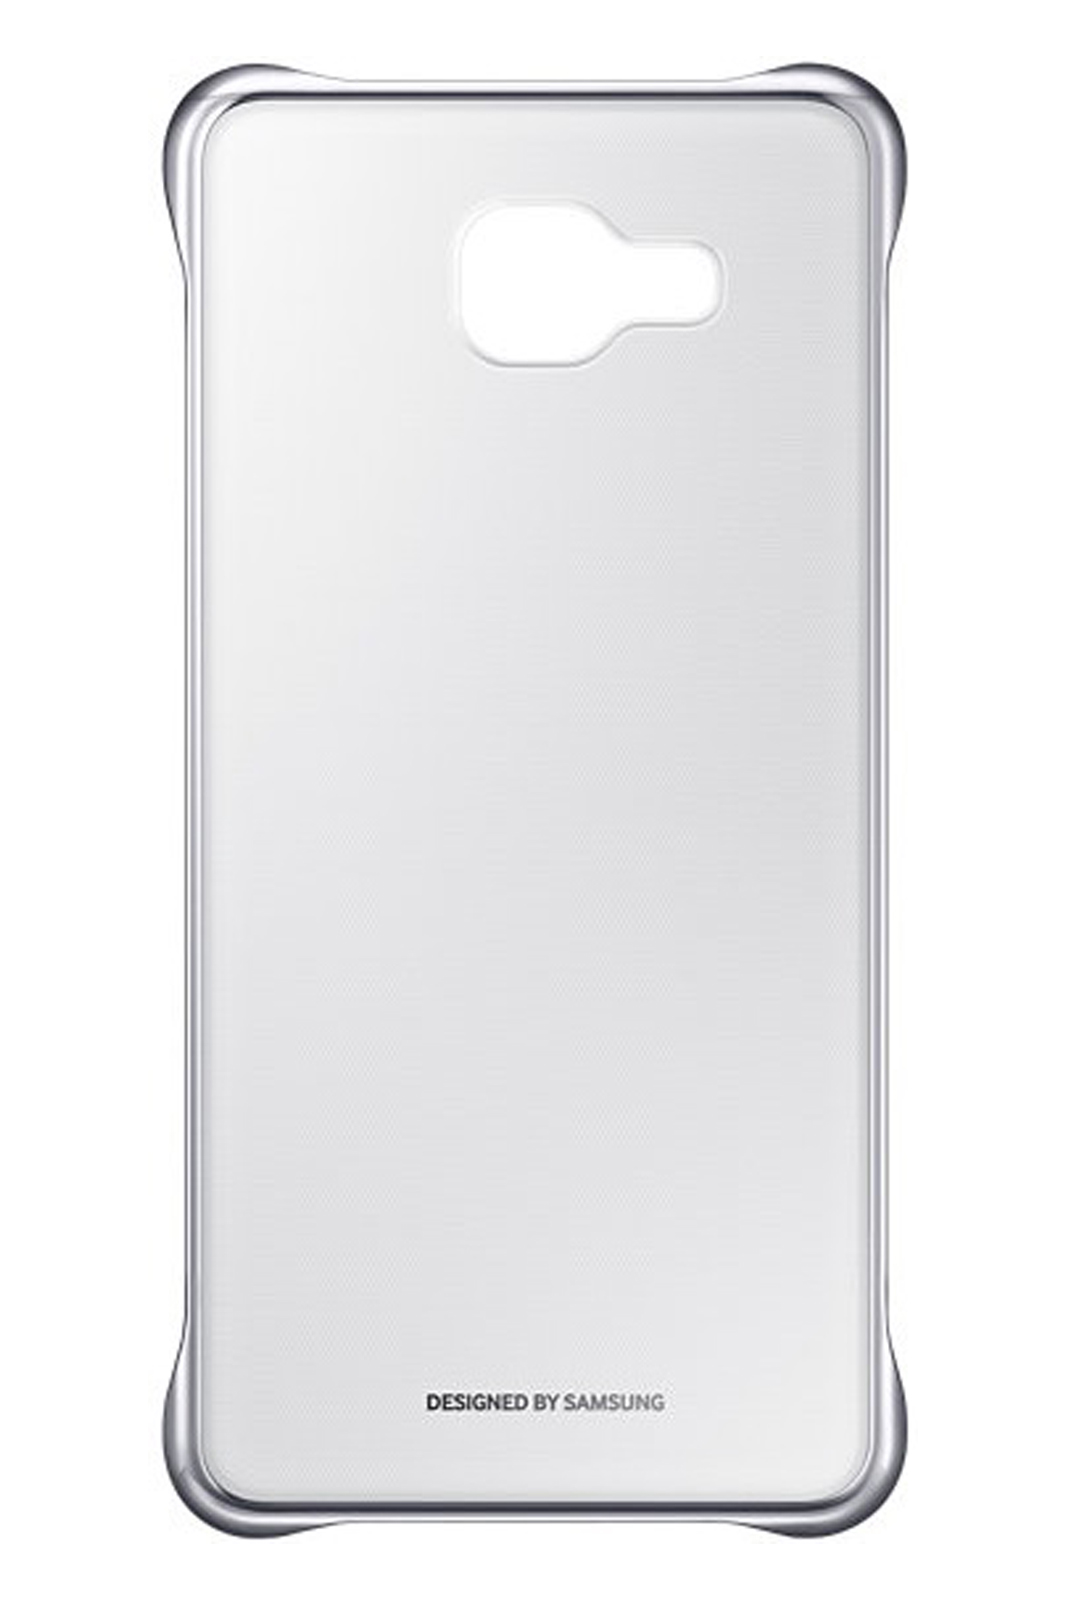 watch cd8a1 ad521 Details about Official Samsung Galaxy A5 2016 A510 Silver Clear Cover -  EF-QA510CSEGWW